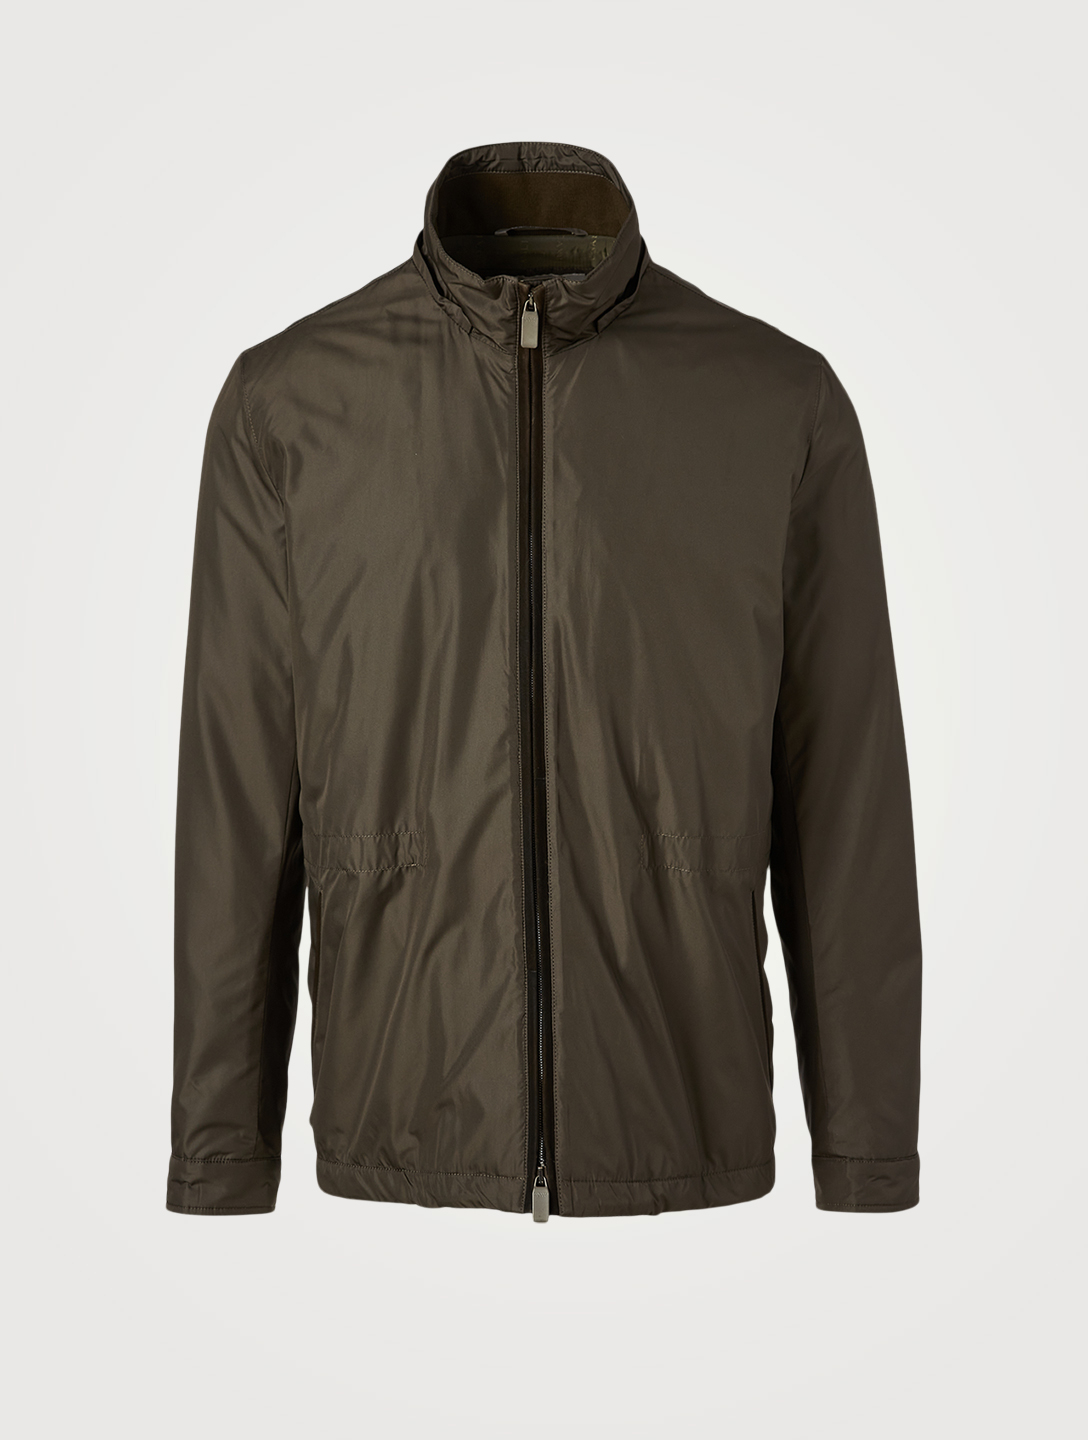 CANALI Zip Field Jacket With Hood Men's Green